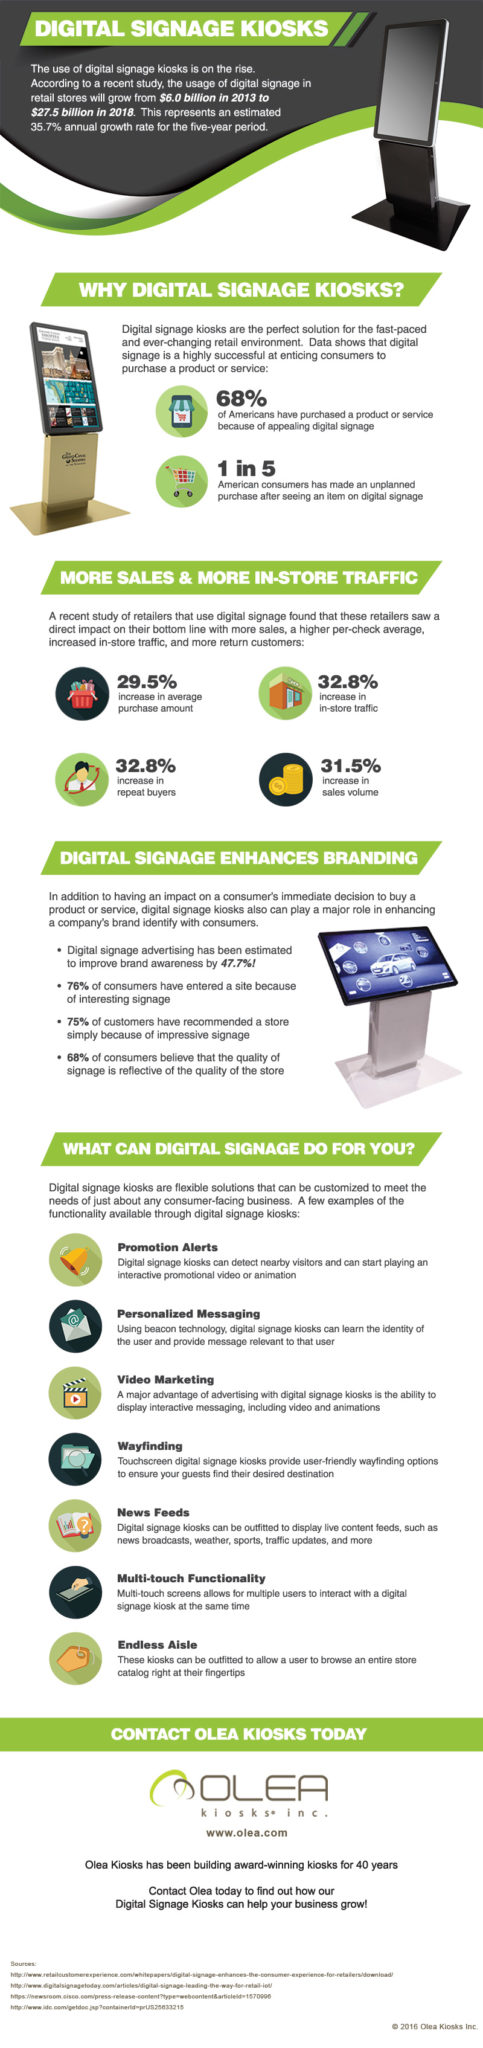 Digital Signage Kiosks - Infographic